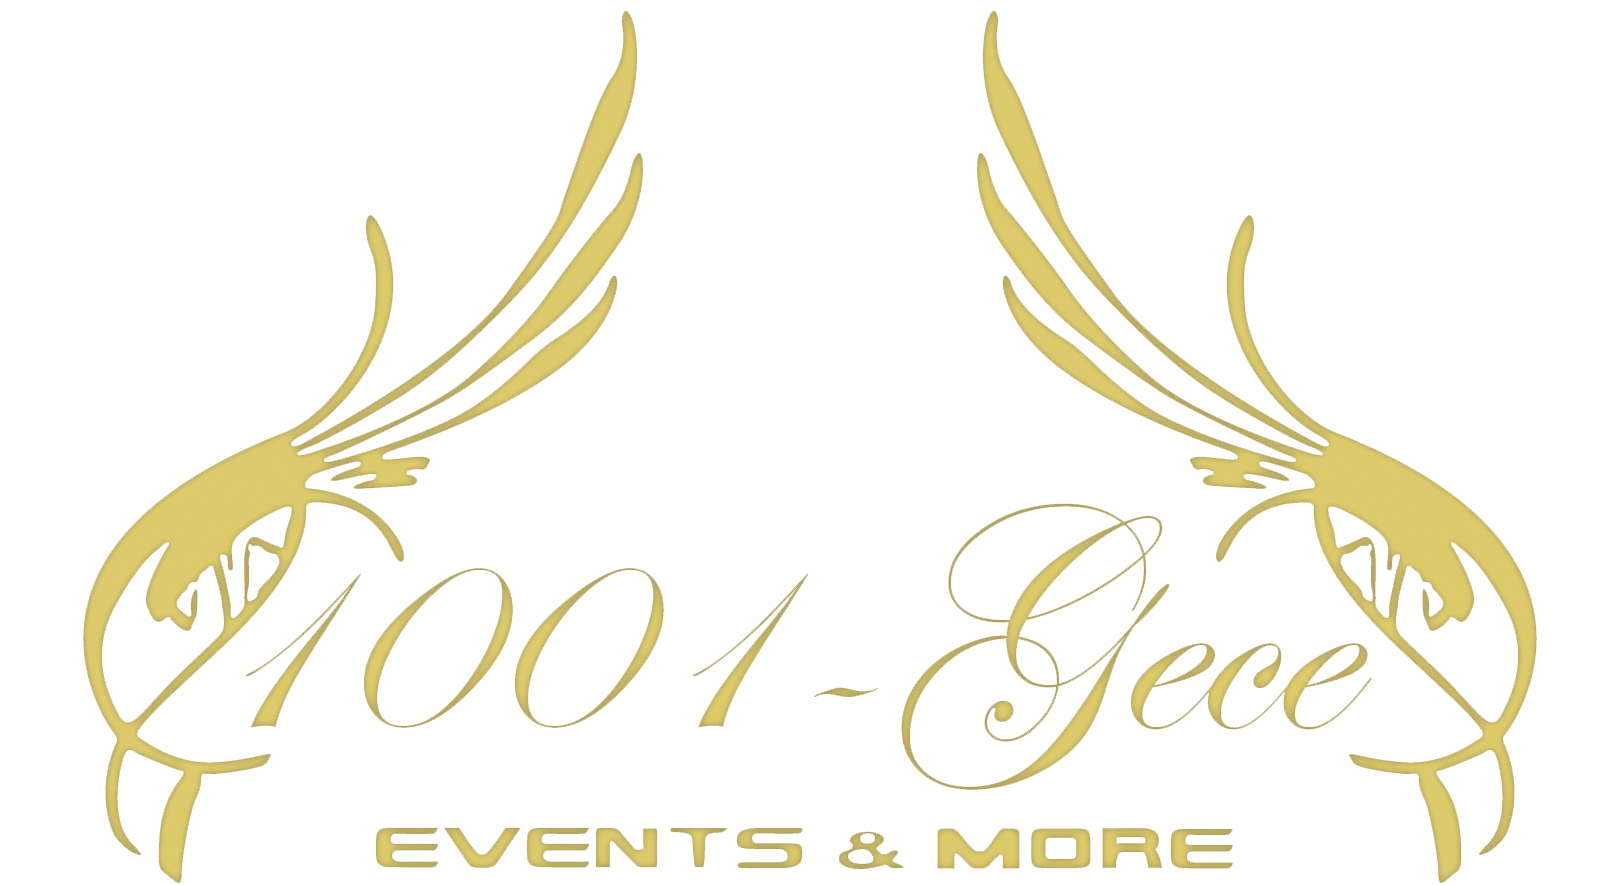 1001-Gece Events & More